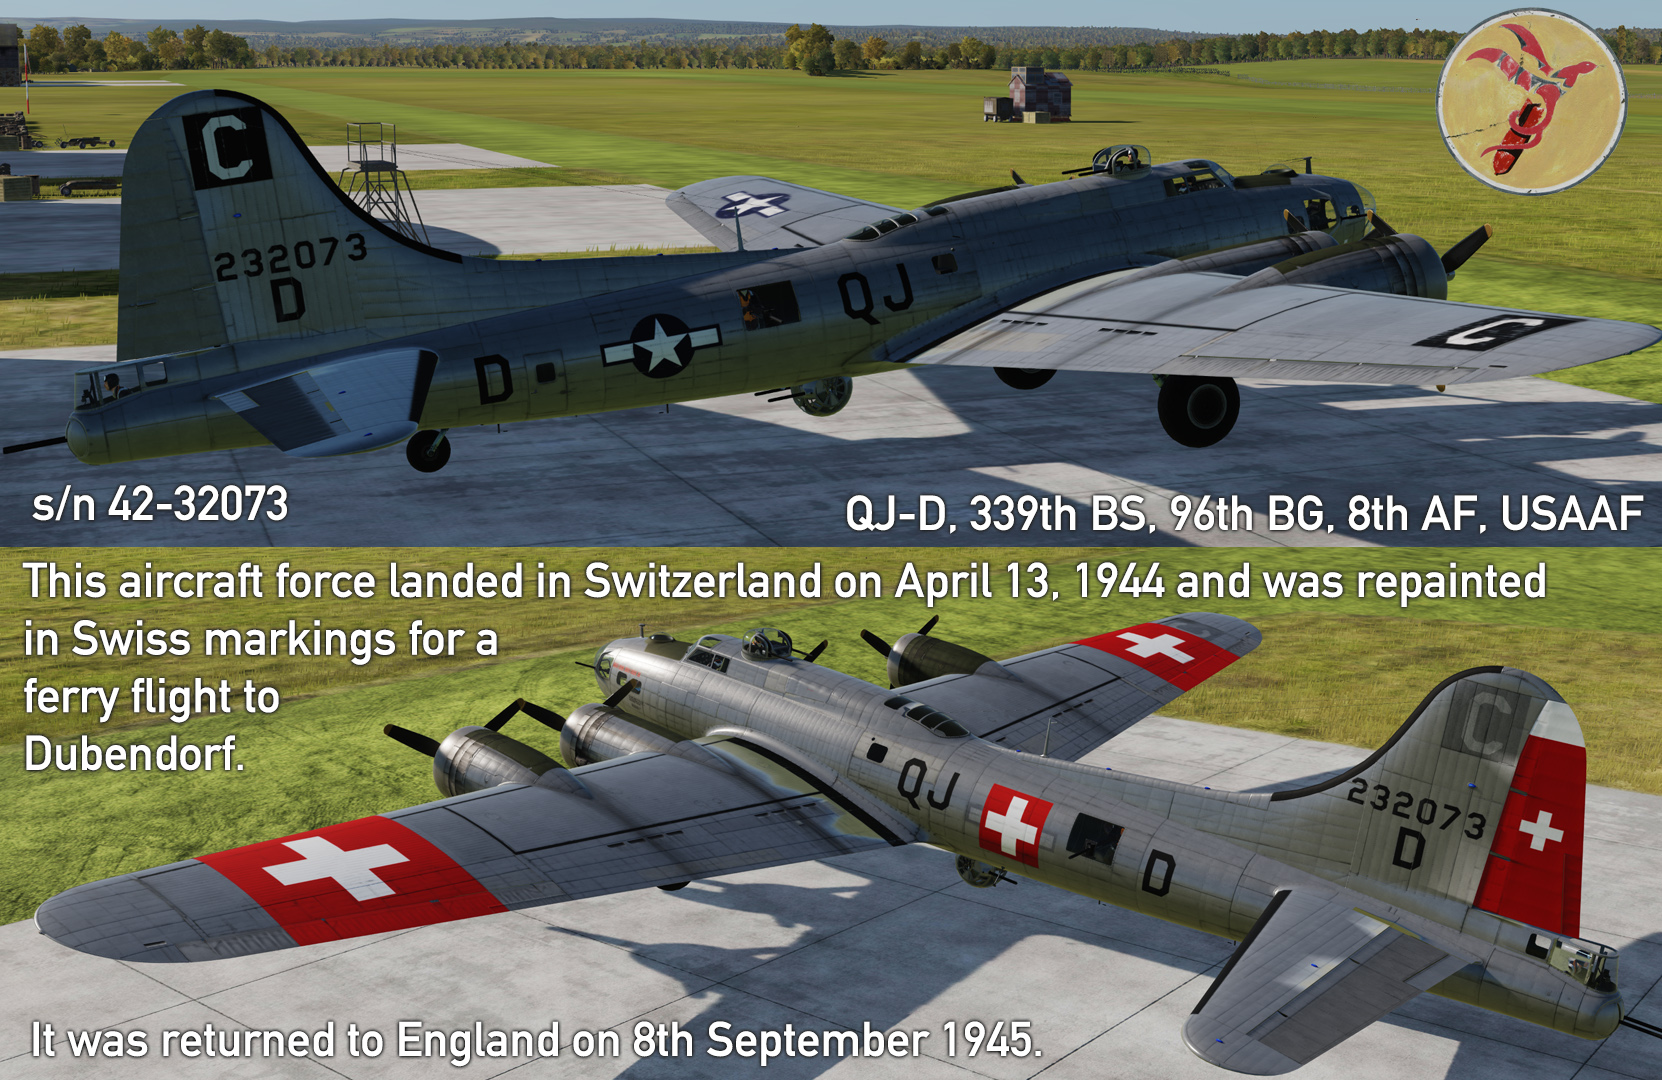 B-17G interned in Switzerland v3